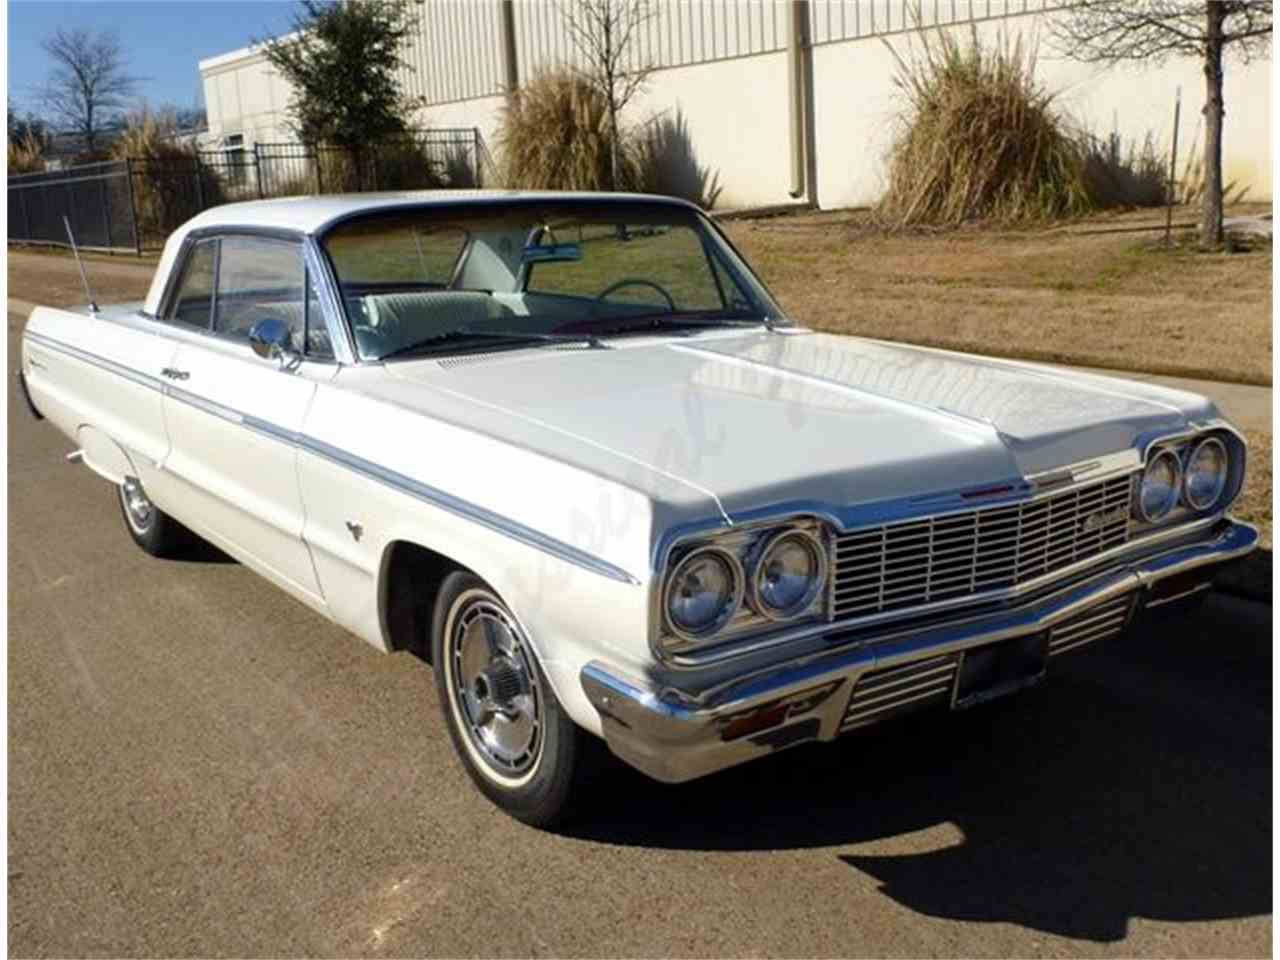 1964 Chevrolet Impala Ss Yellow For Sale On Craigslist